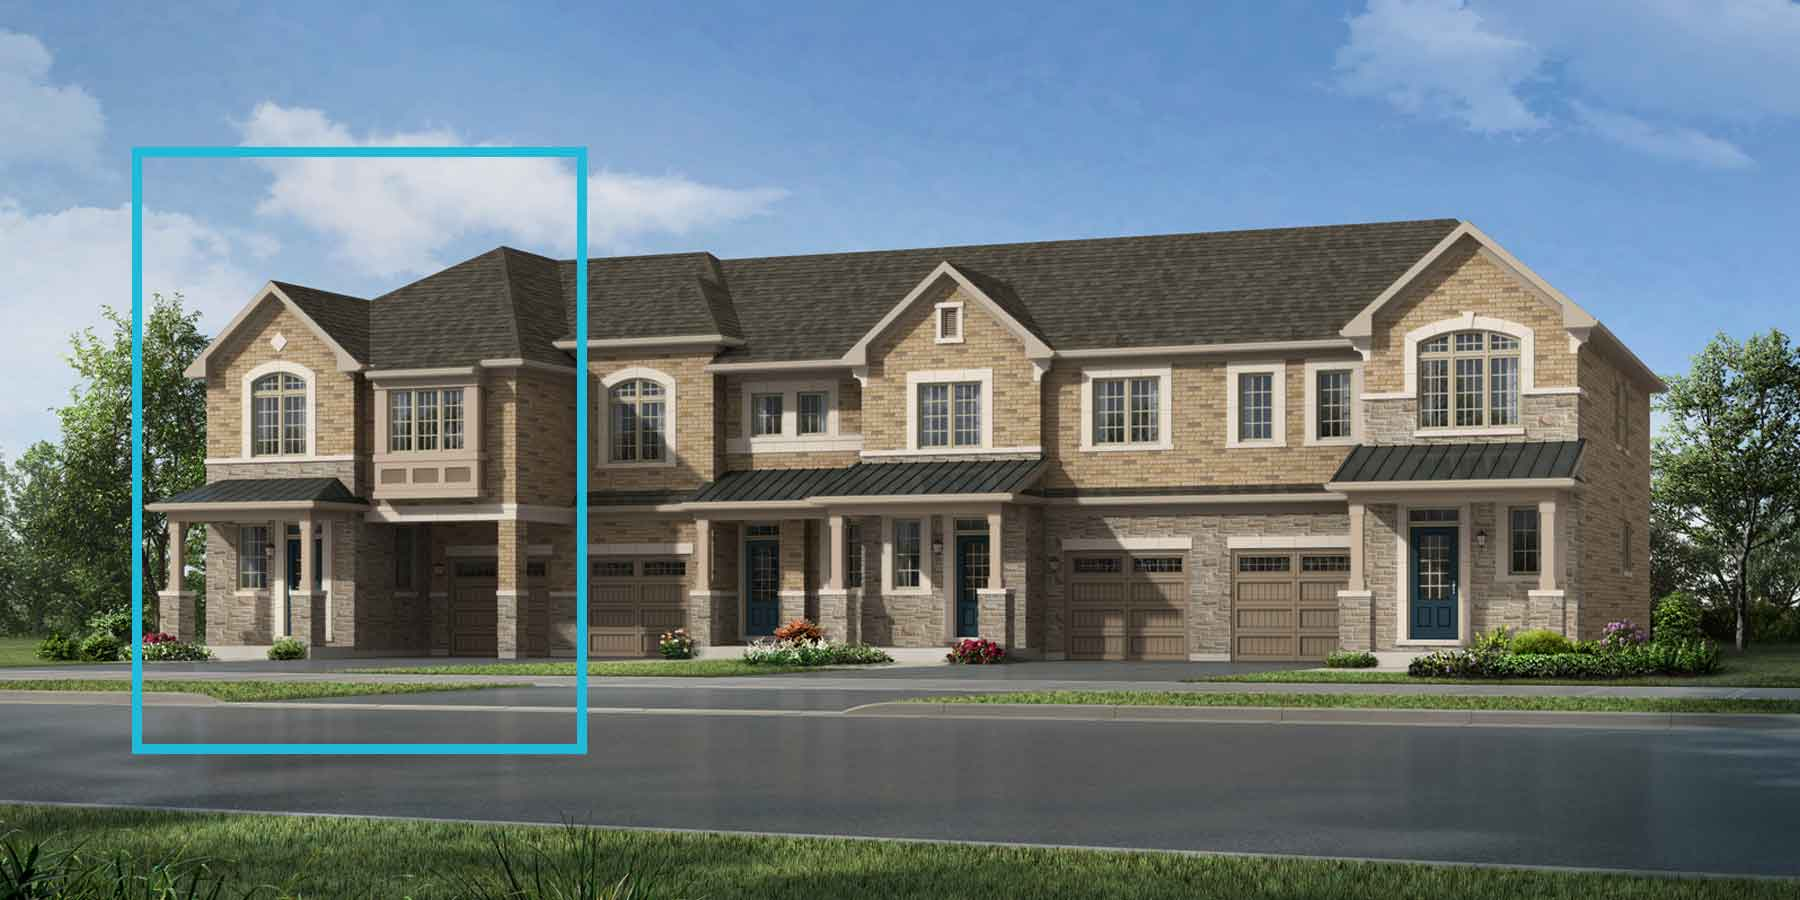 Valley View Plan TownHomes at Seaton Whitevale in Pickering Ontario by Mattamy Homes